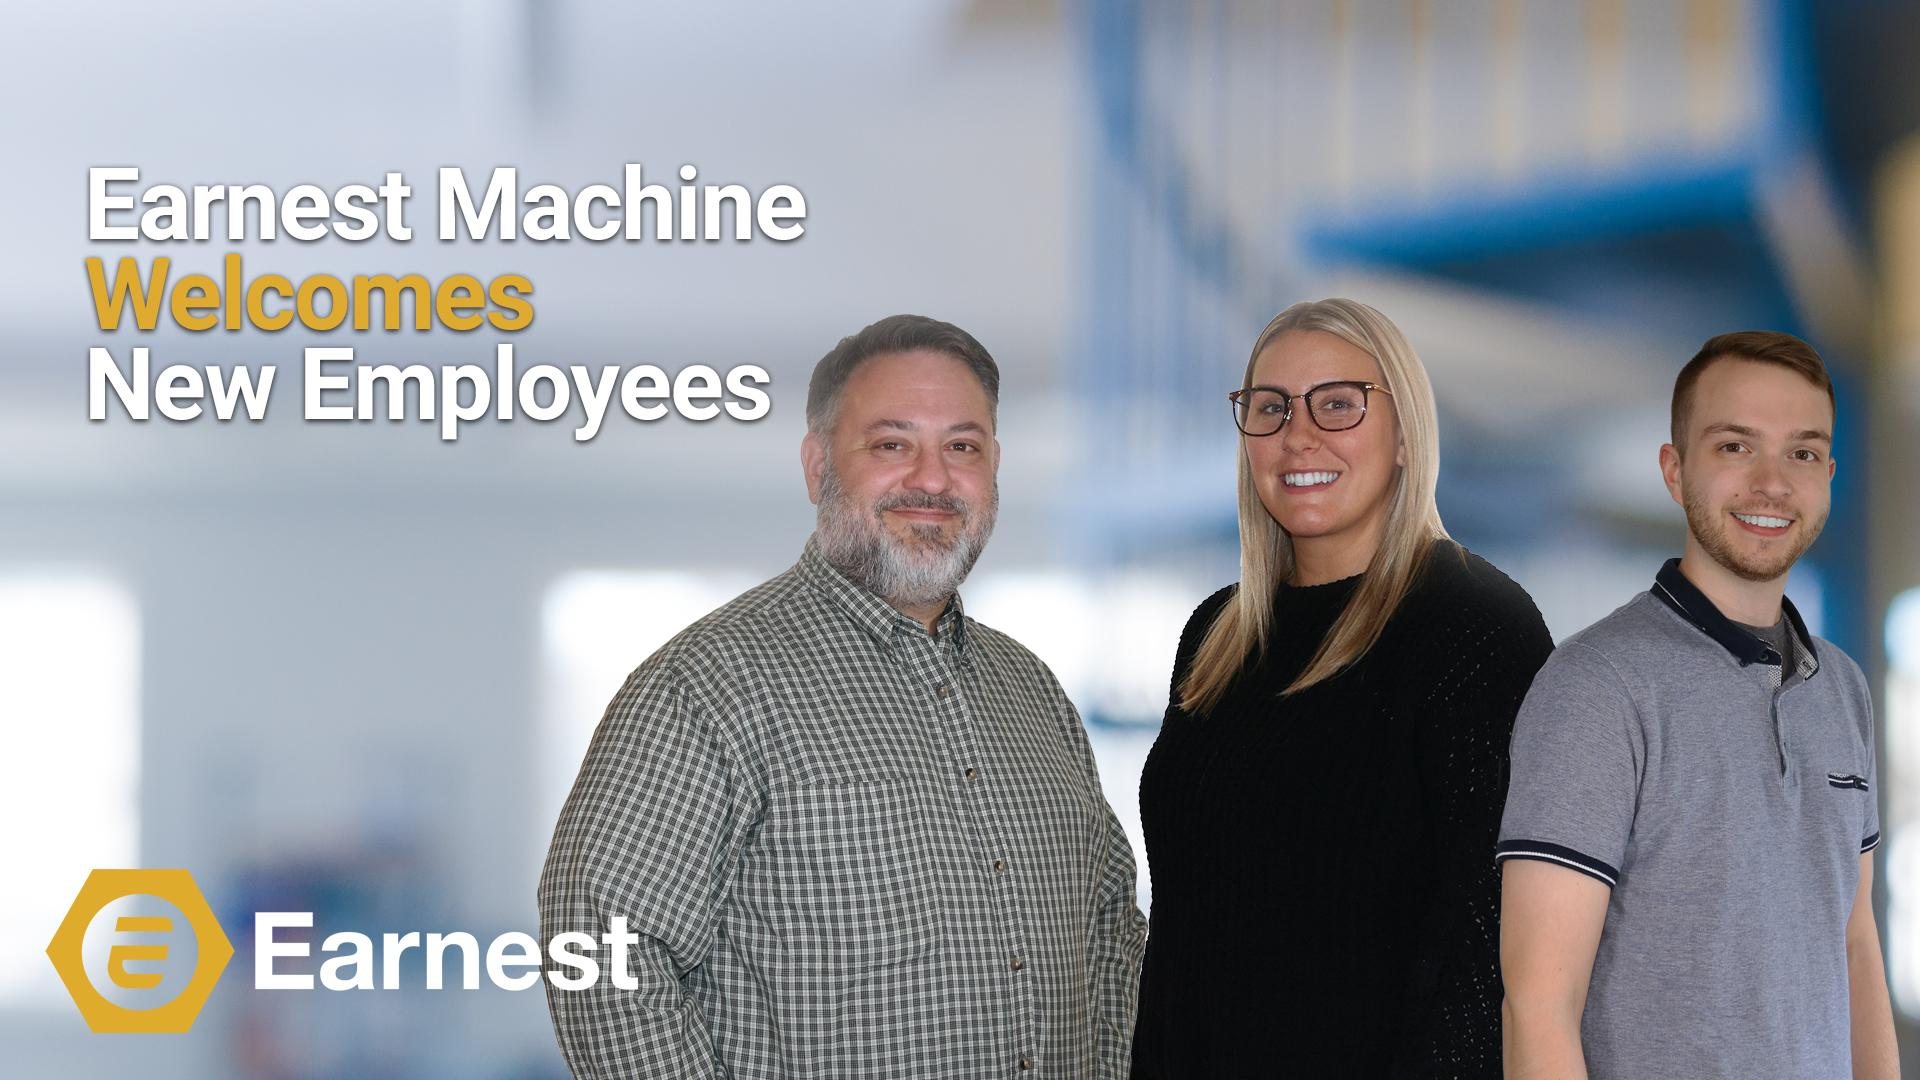 Earnest Machine Welcomes New Employees